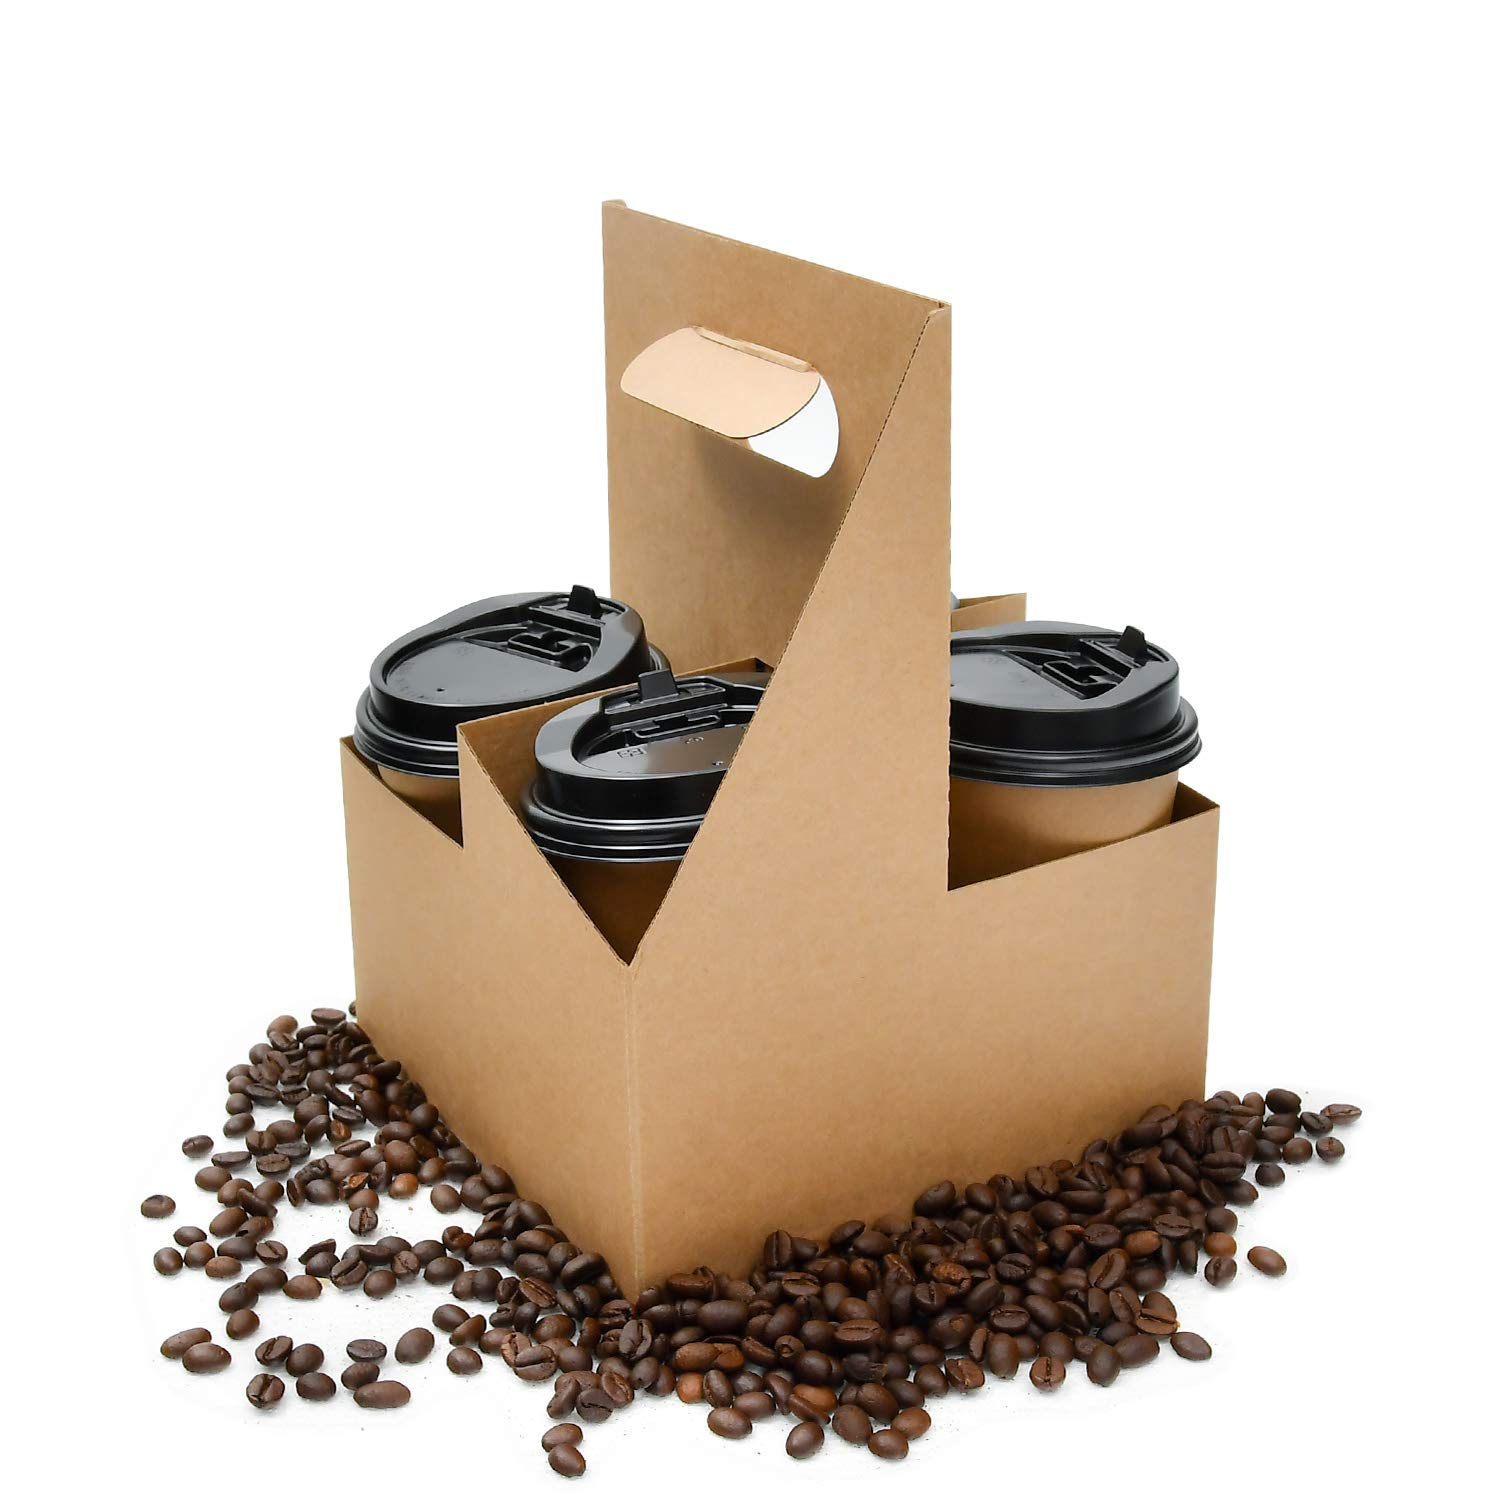 [25 Pack] Disposable Drink Carrier with Handle, Coffee to Go Carrier, Drink Takeout Holder, Holds up to 4 Cups of 20 oz. Made of Corrugated paper, Great Holding Capacity (4 Cups)